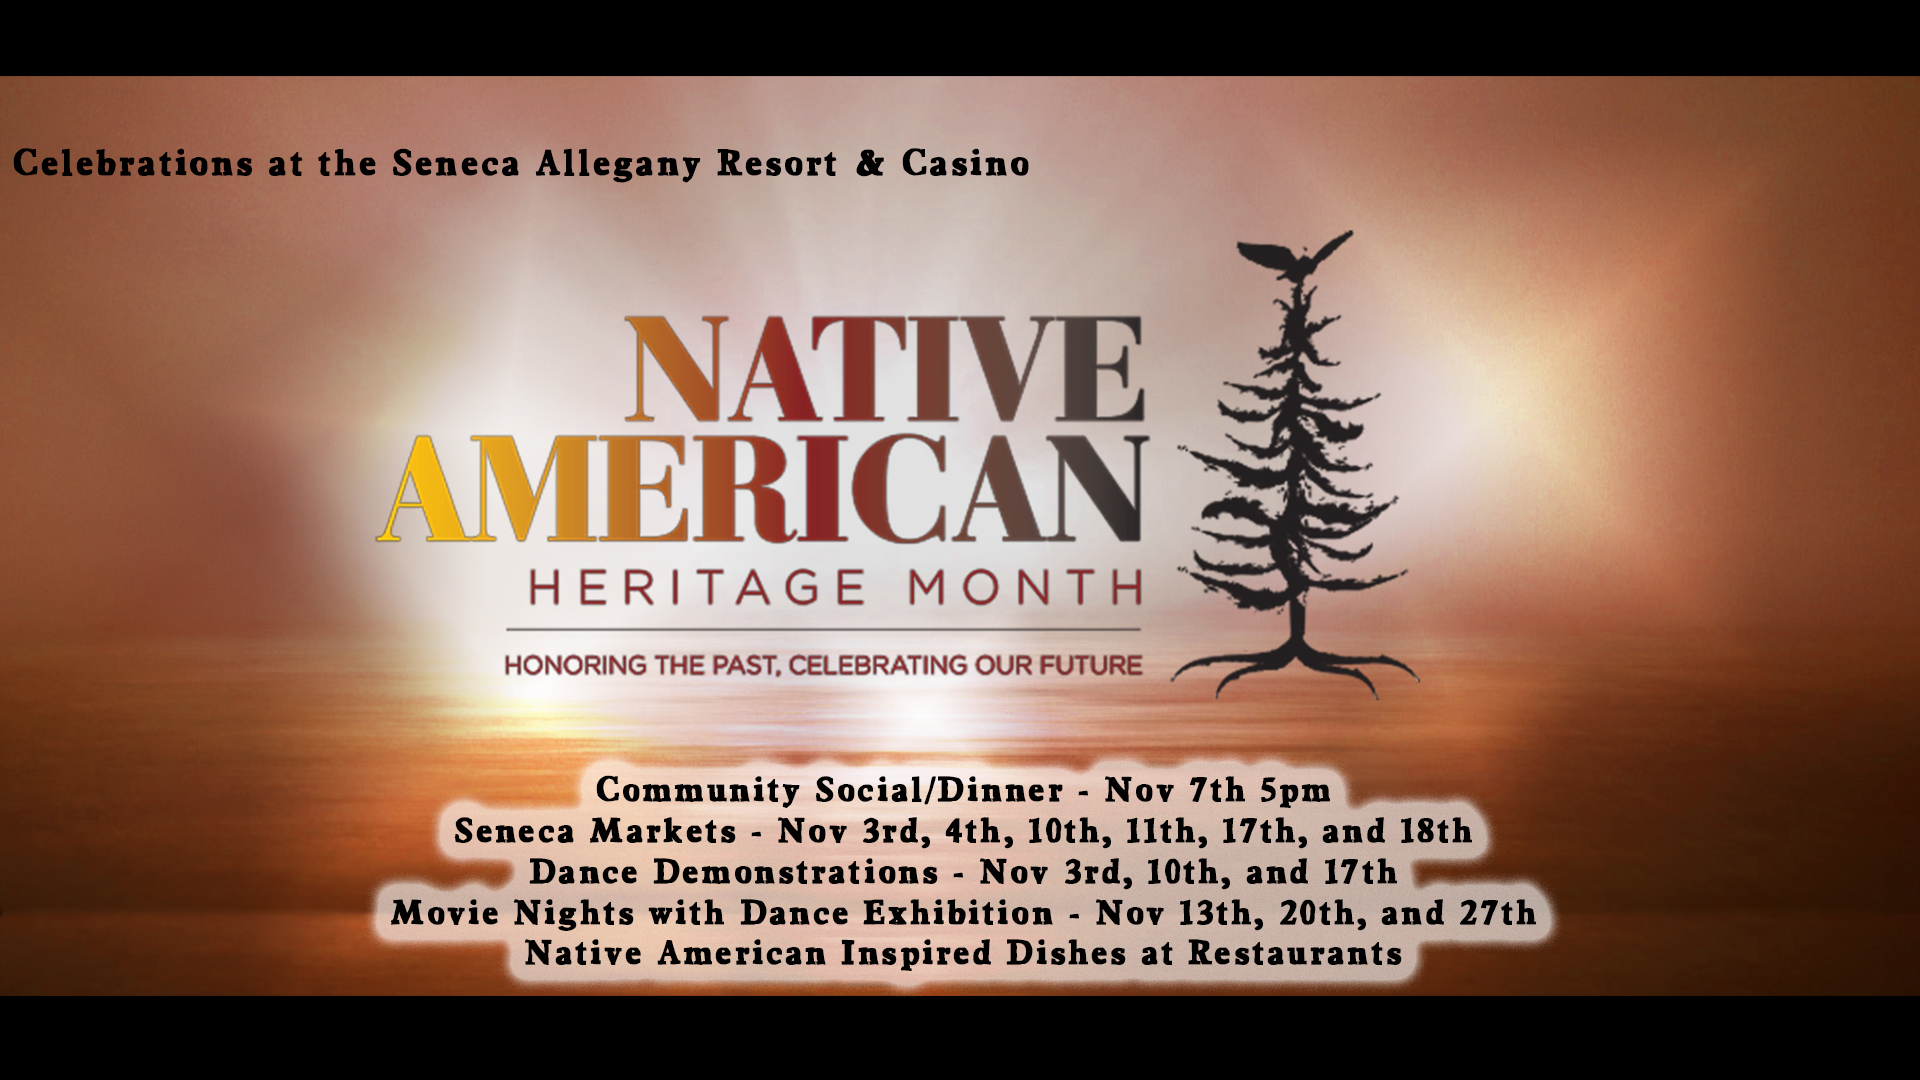 Native American Heritage Month 2018 at the Seneca Allegany Casino